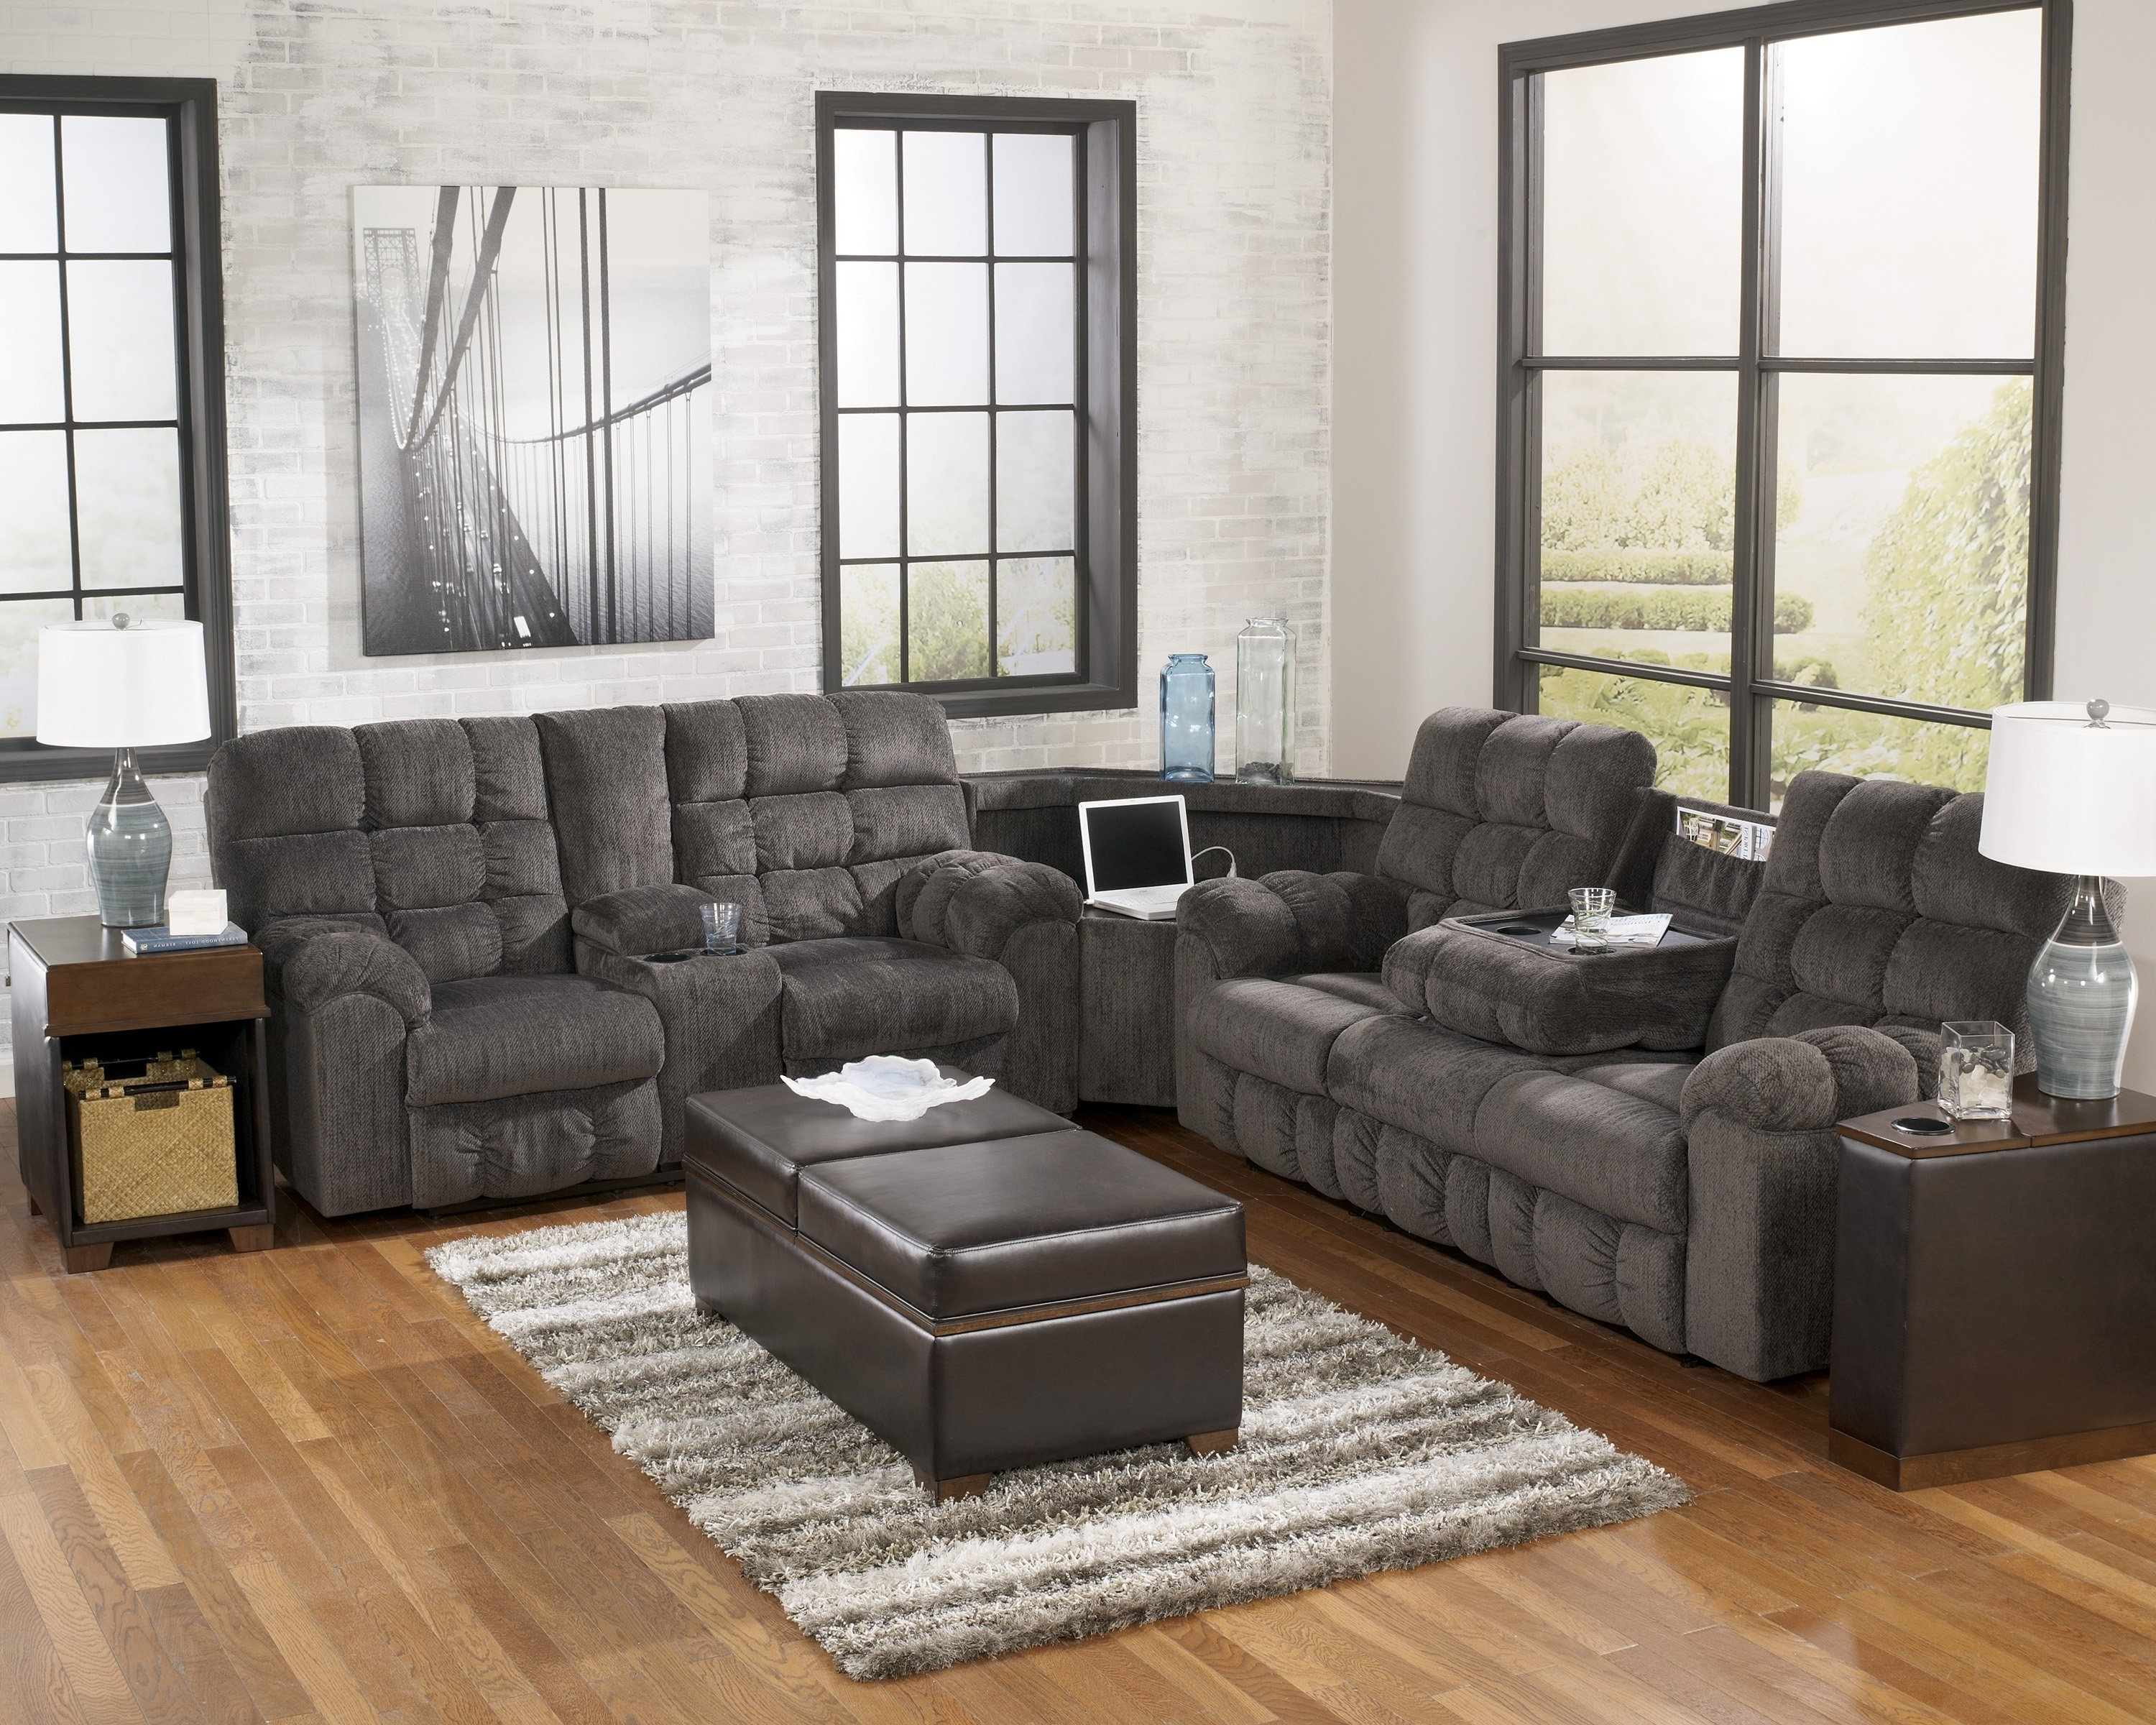 furniture chair sectional tufted item lsg coaster sofa sofas button armless couches with ashley roy mattress collections